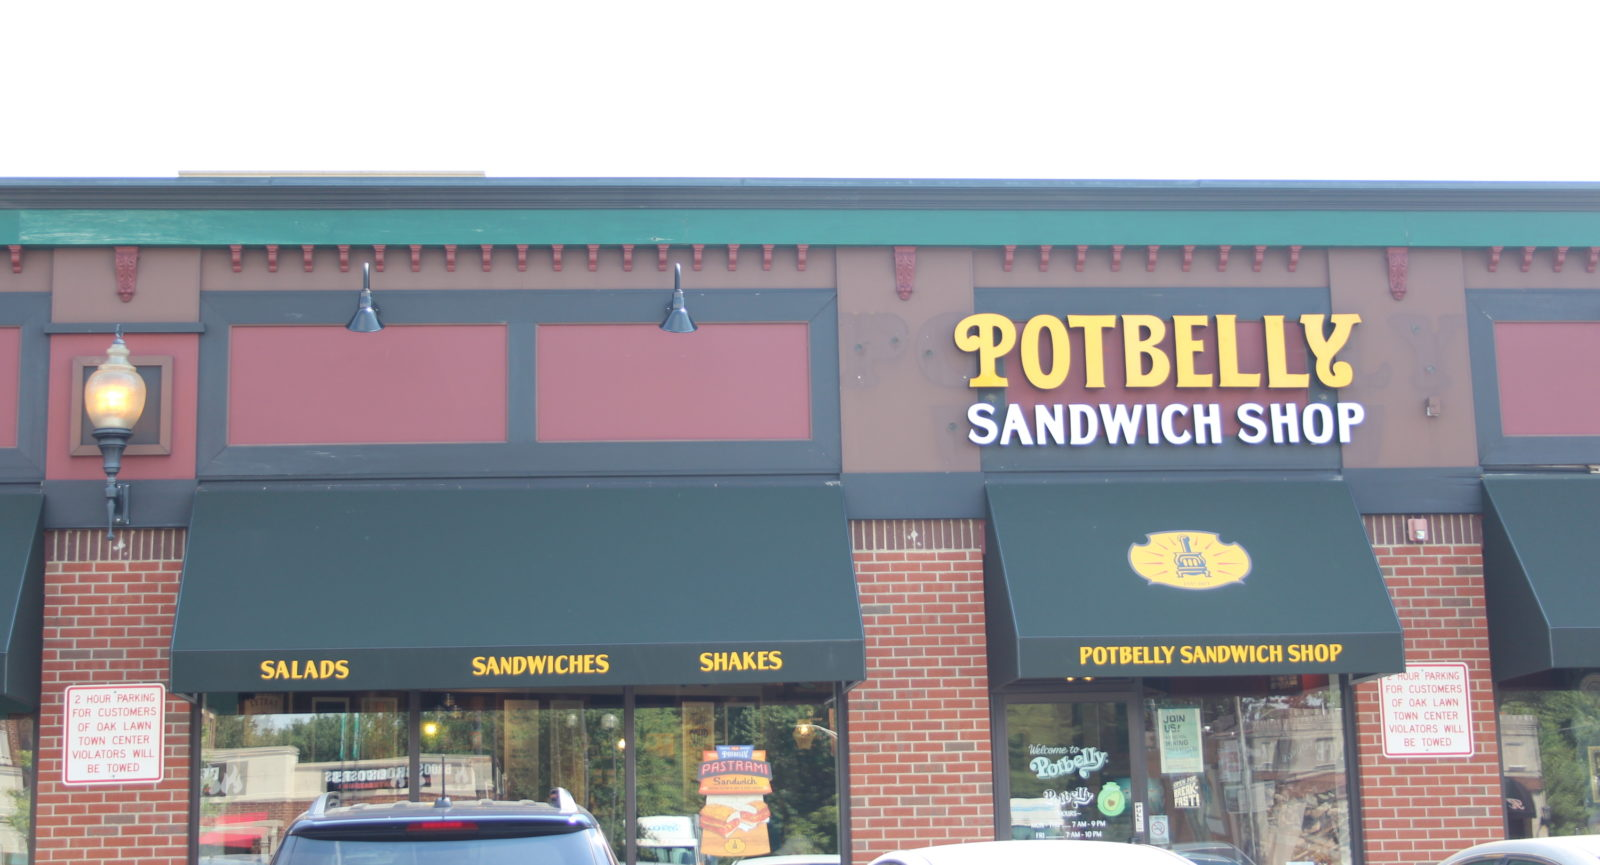 Lunch at Potbelly Sandwich Shop